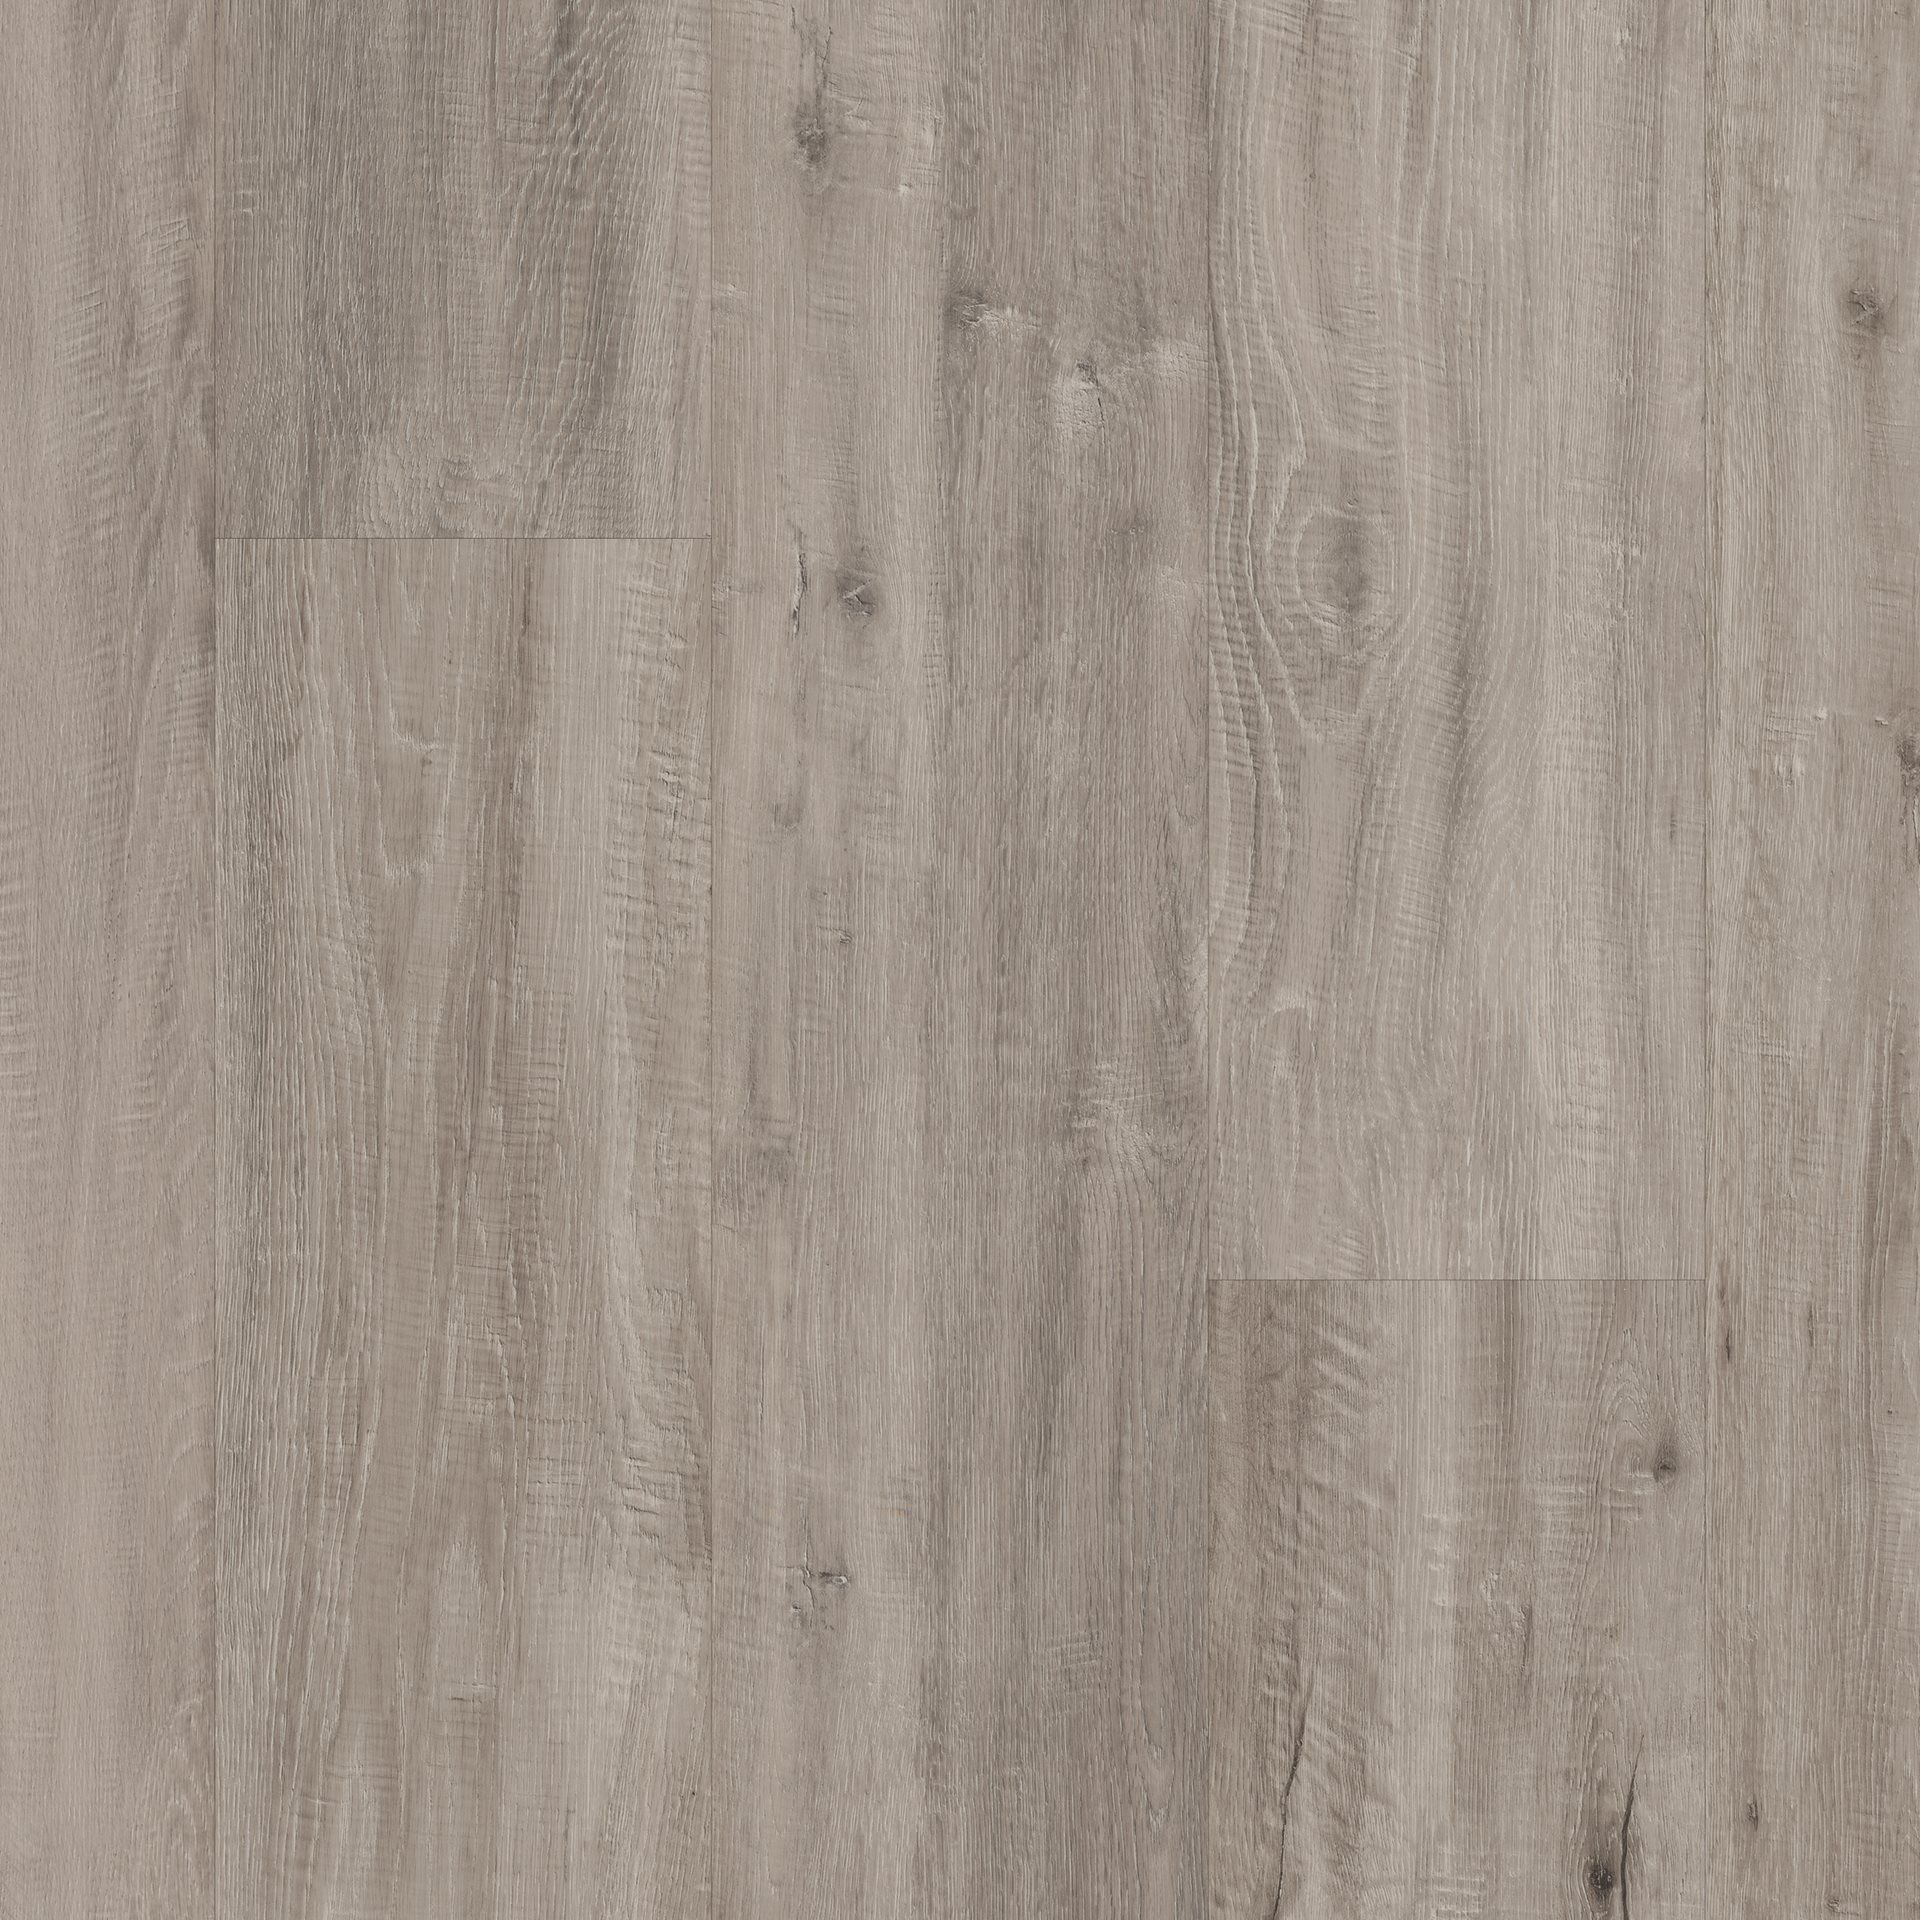 Karndean LooseLay Longboard French Grey Oak